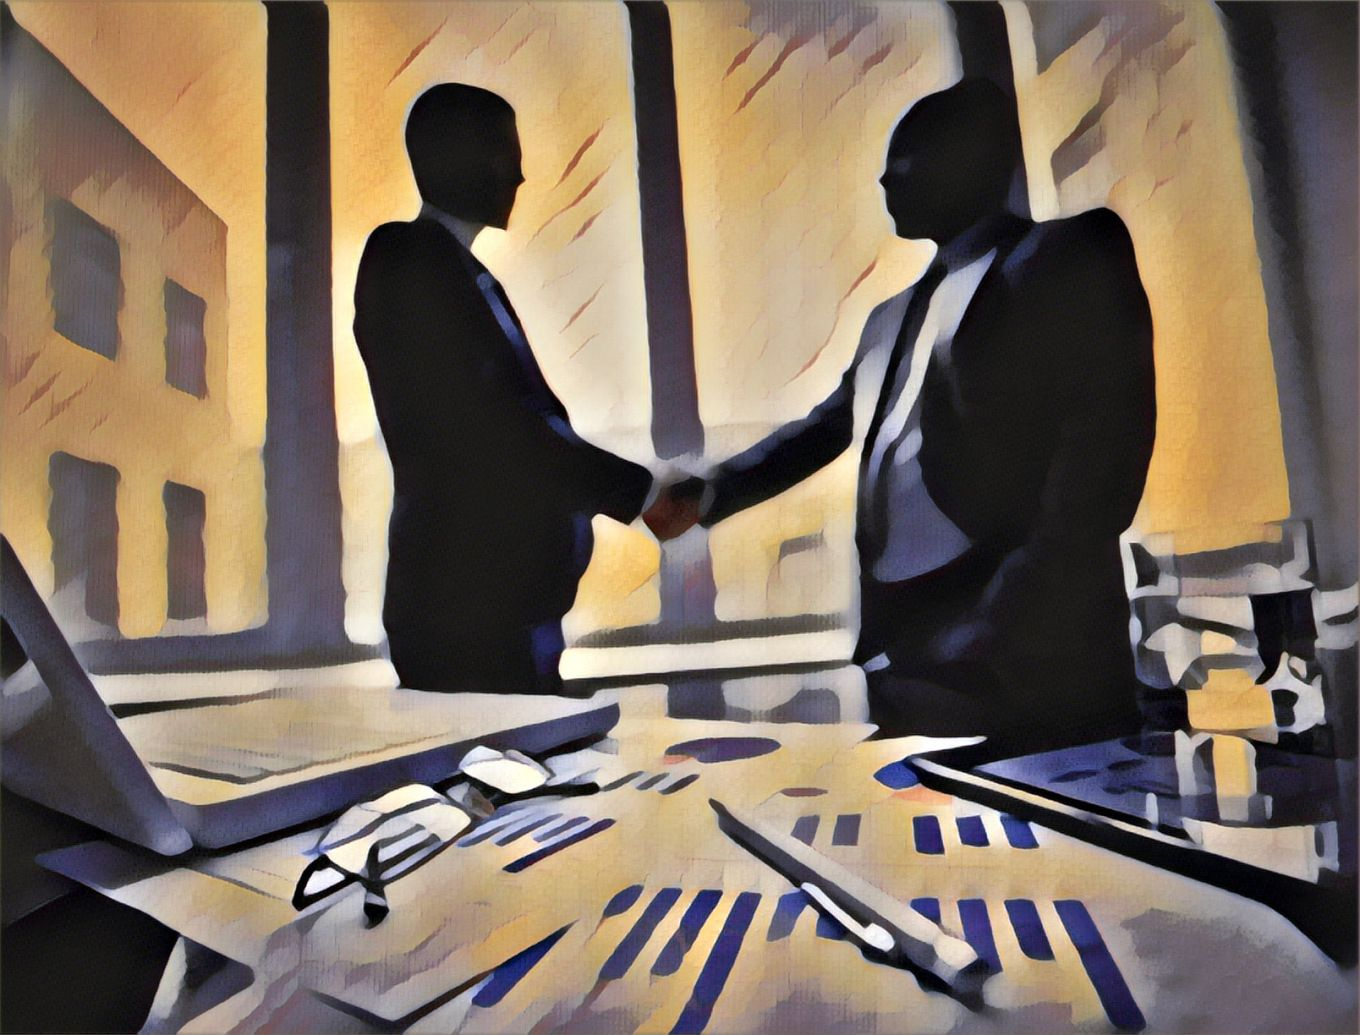 Prisma shifts focus to b2b with an API for AIpowered